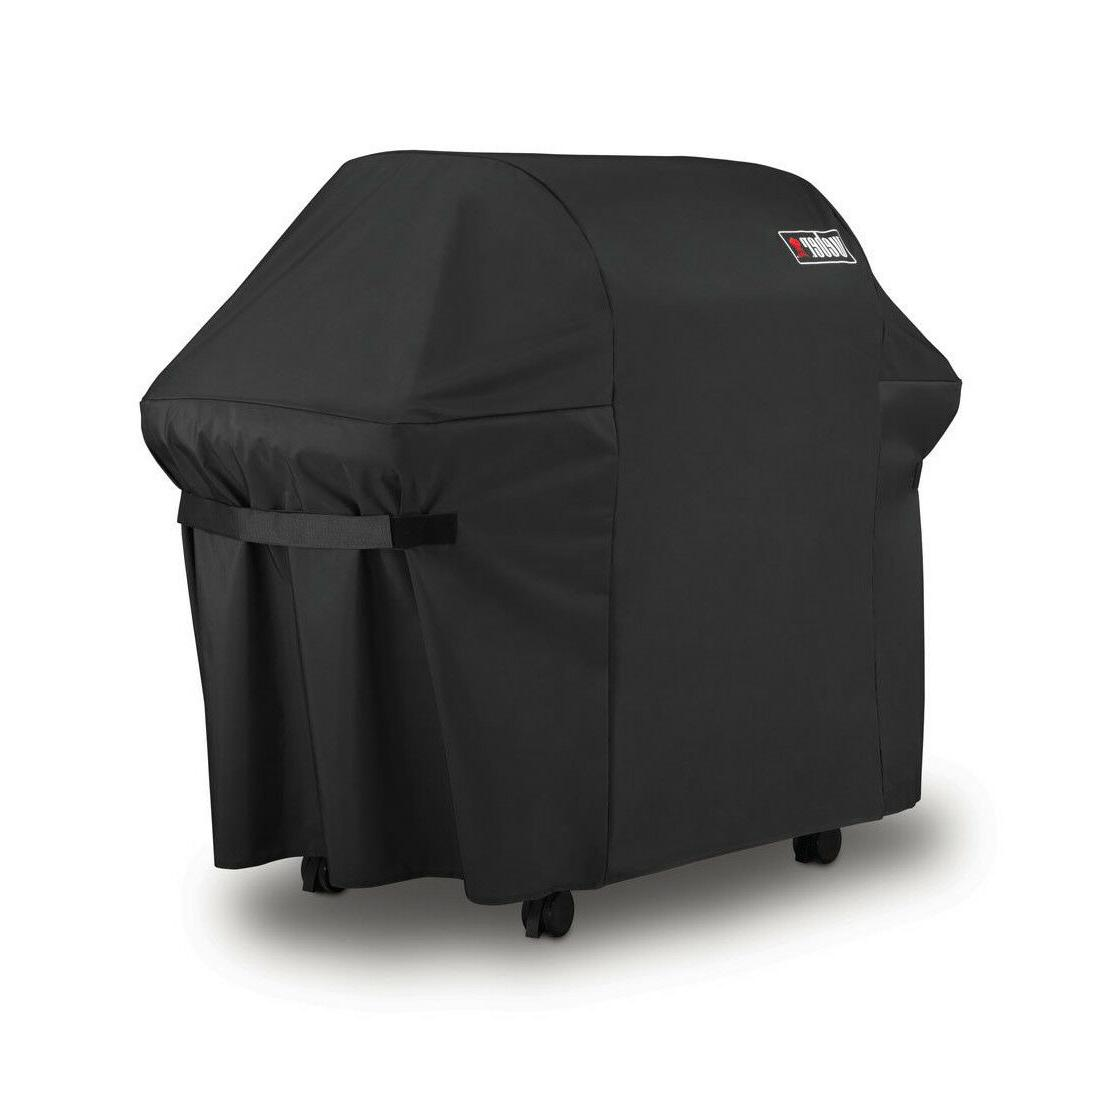 Weber 7107 Grill with Storage Genesis Gas Grills